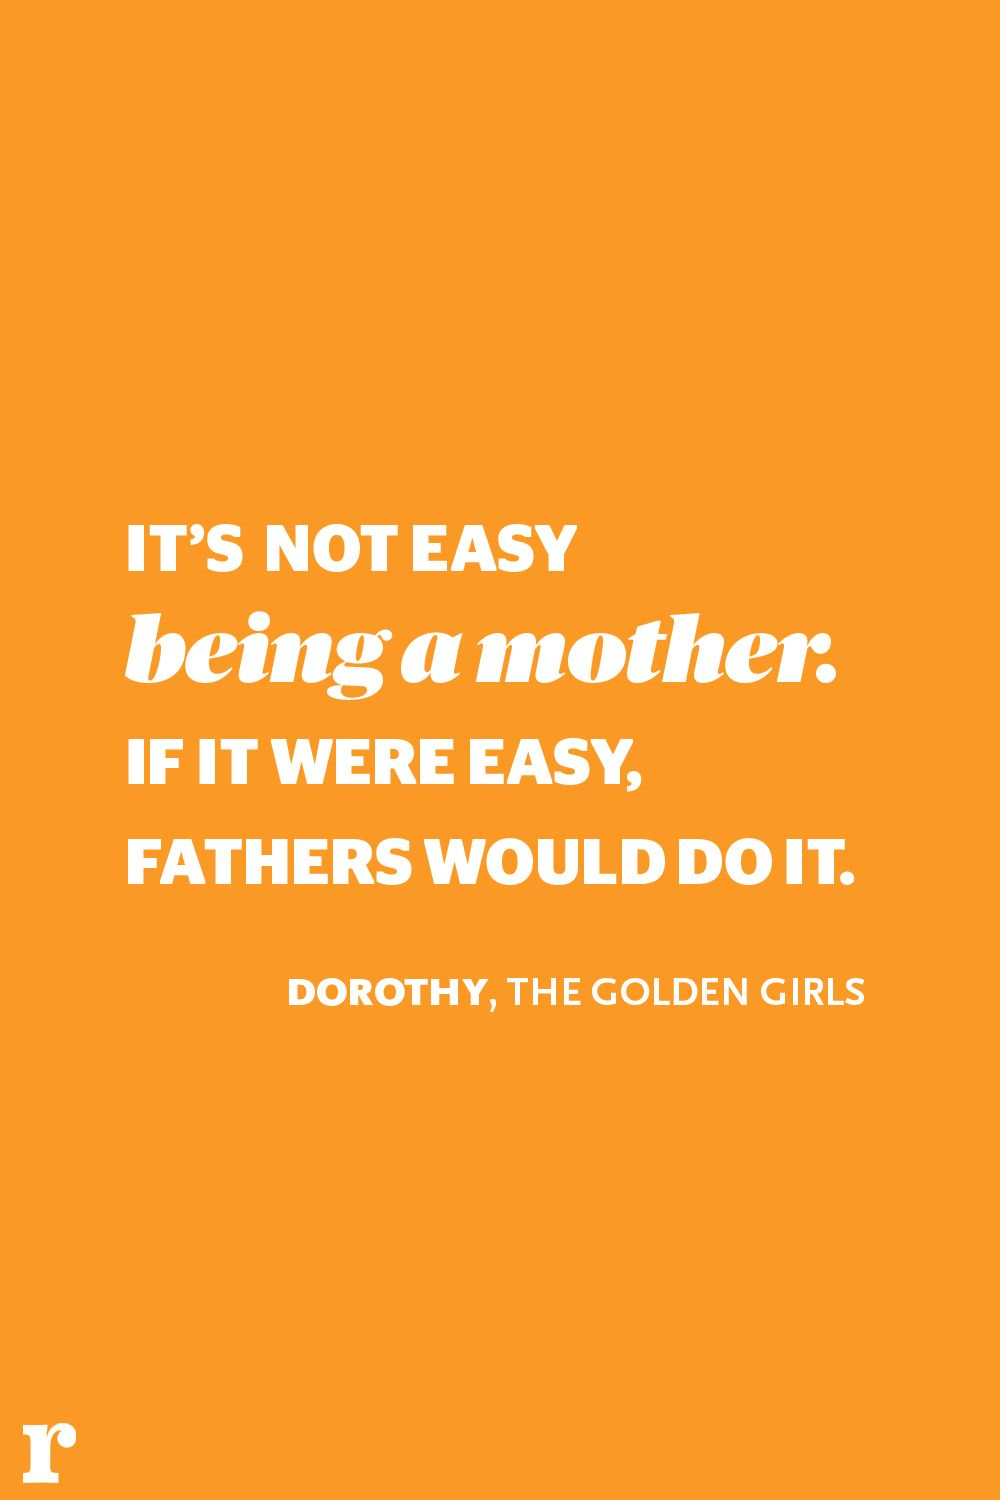 17 Best Mothers Day Quotes Heartfelt Quotes For Mom On Mothers Day